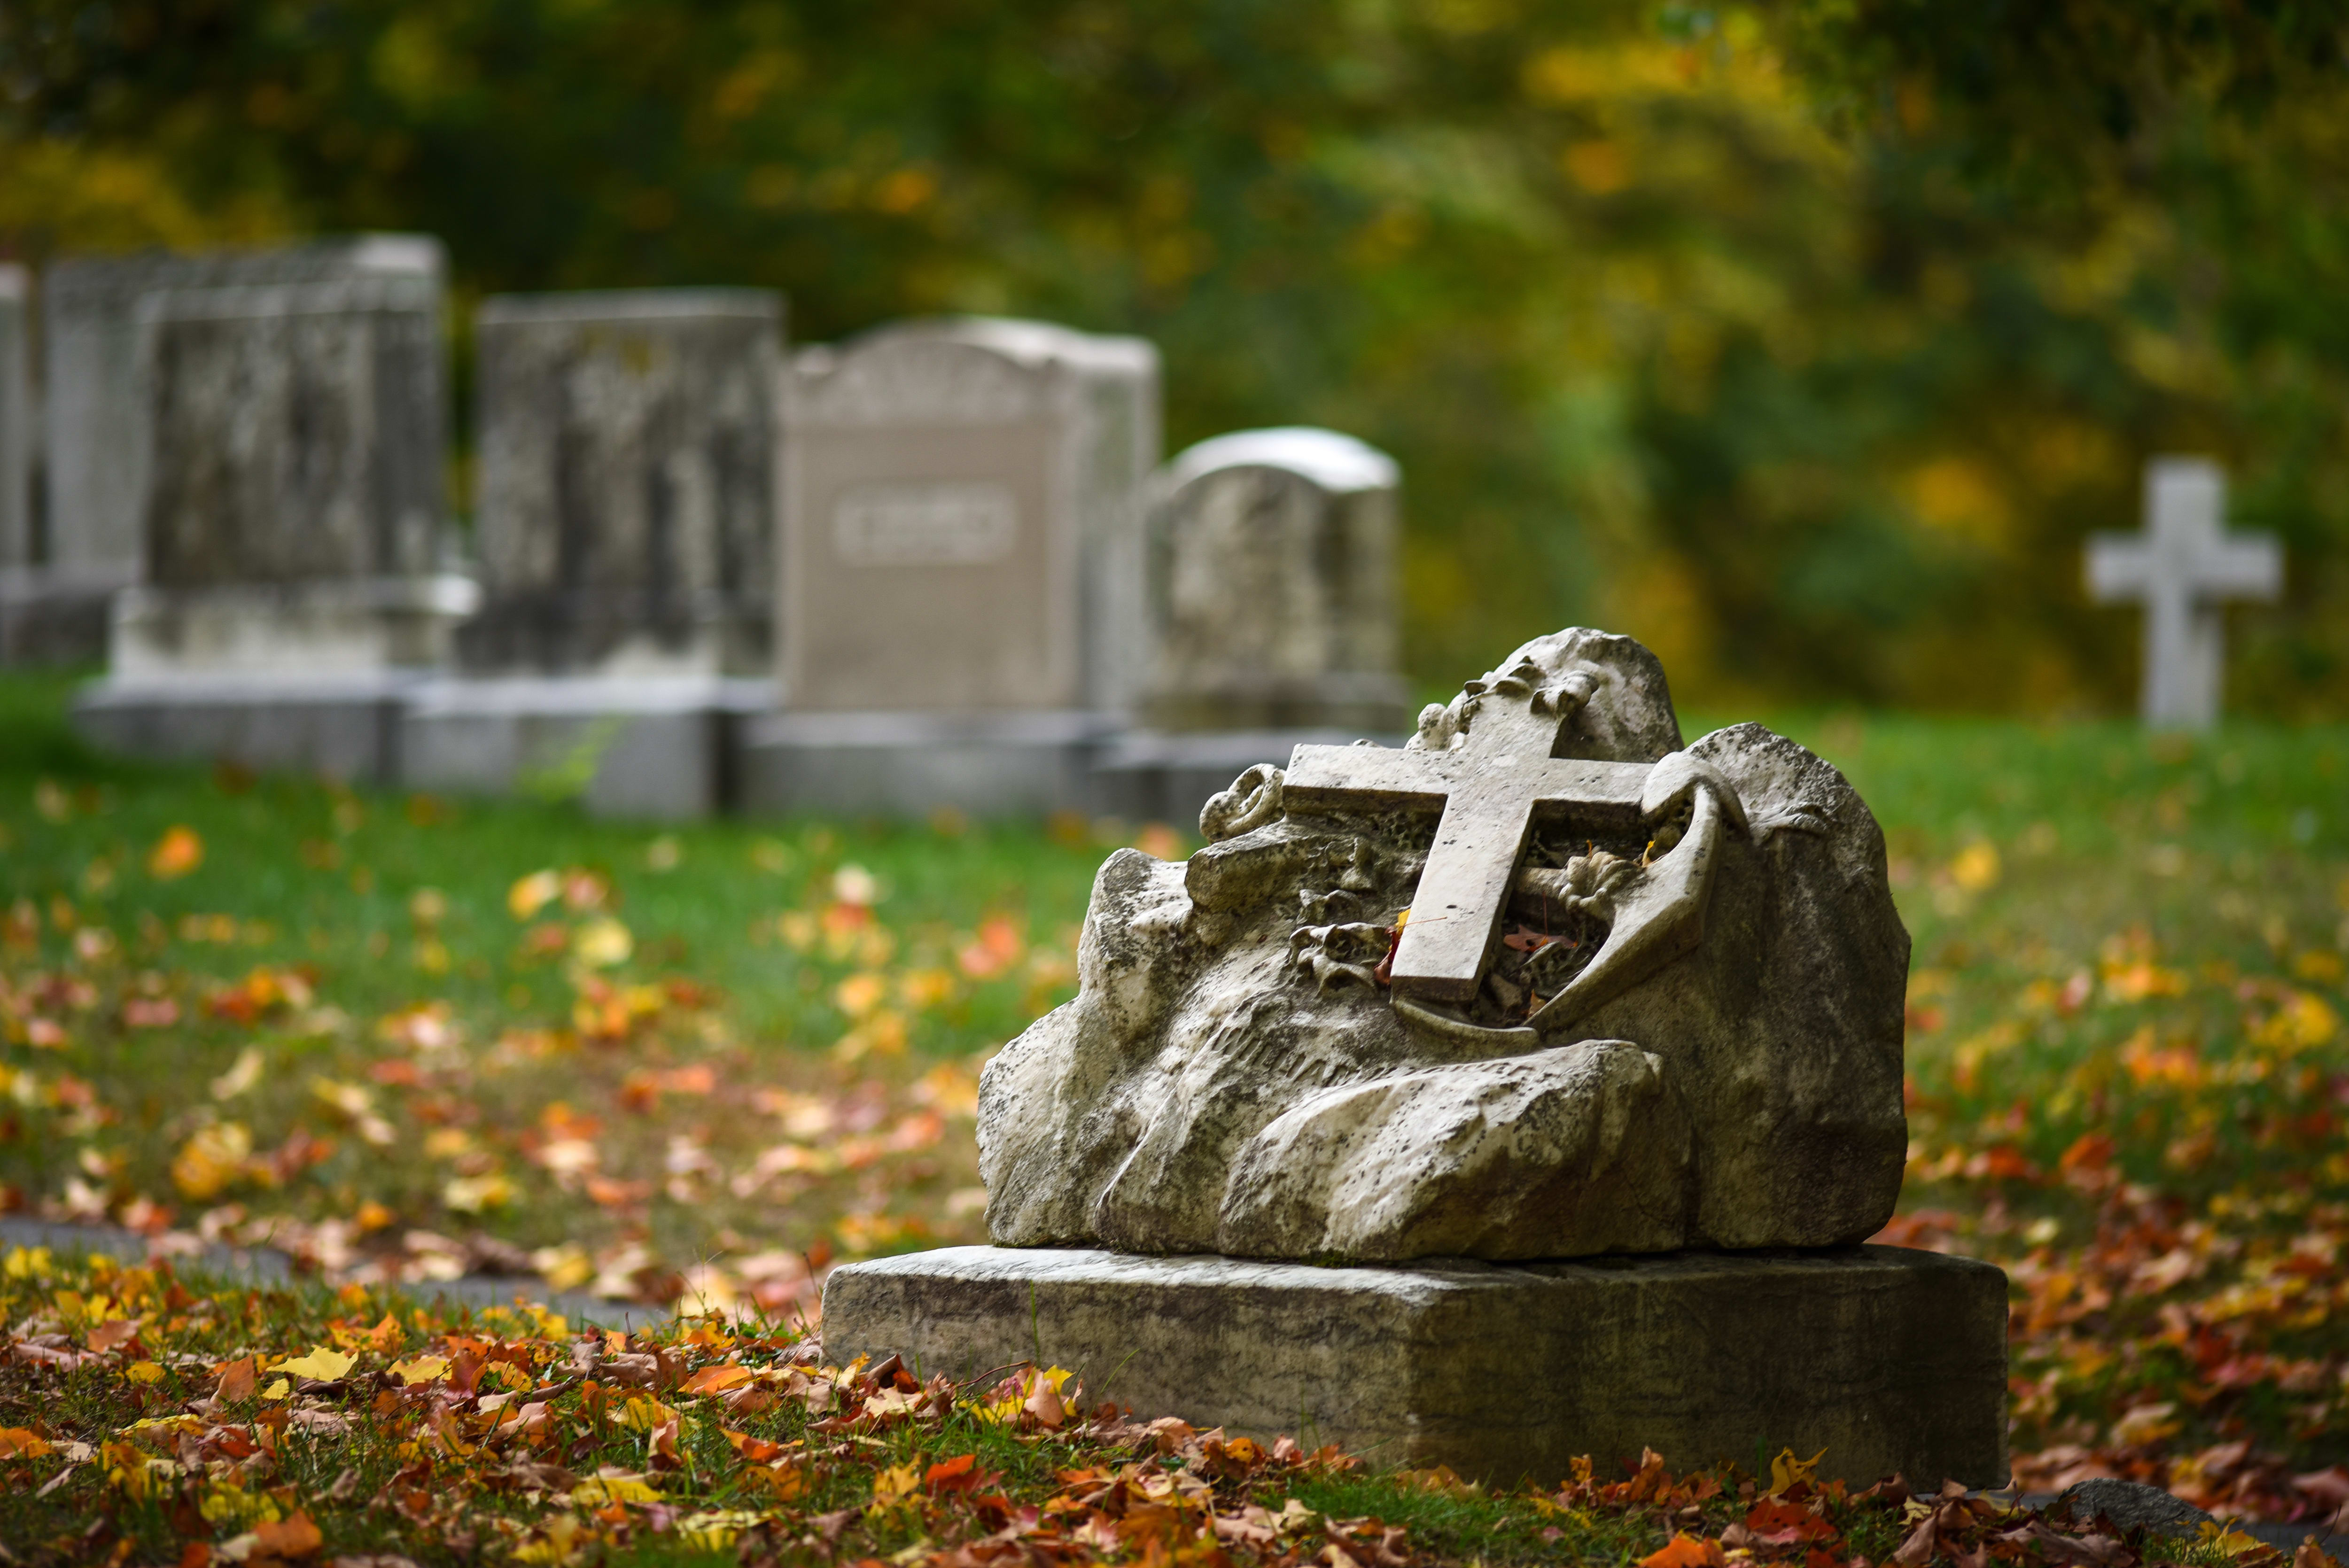 The D750's highlight control is an asset when photographing white subjects such as these headstones.